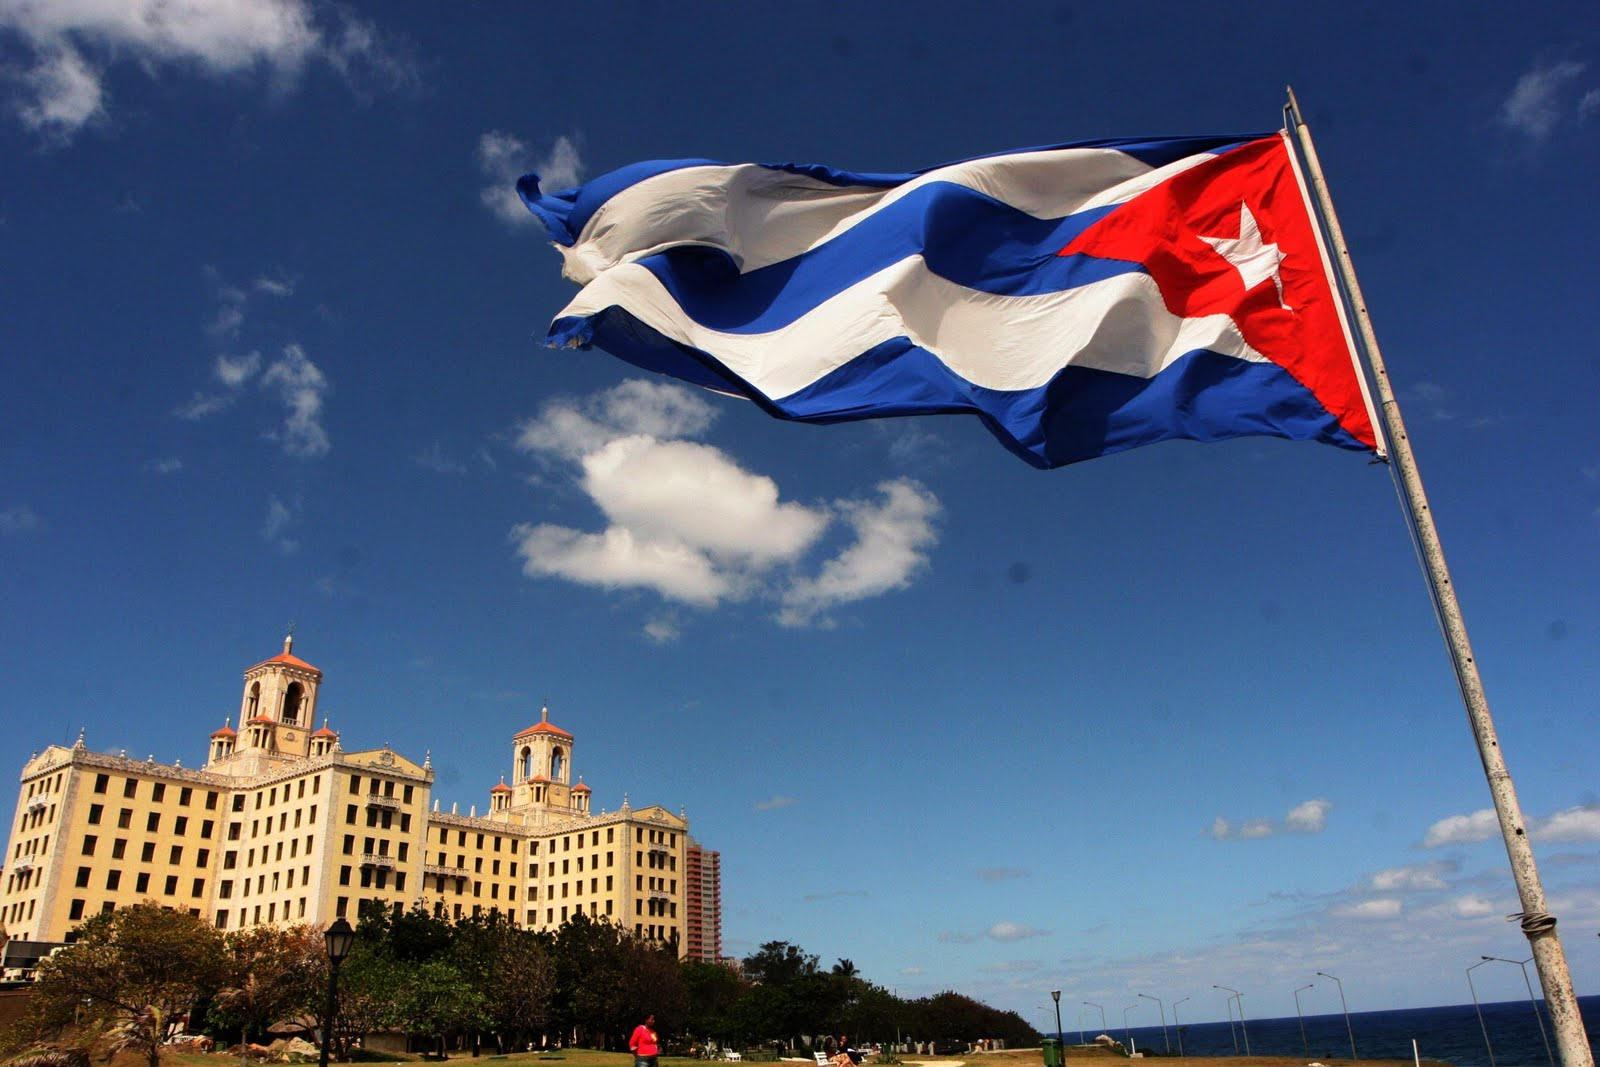 https://i1.wp.com/www.revistasumma.com/wp-content/uploads/2015/02/cuba.jpg